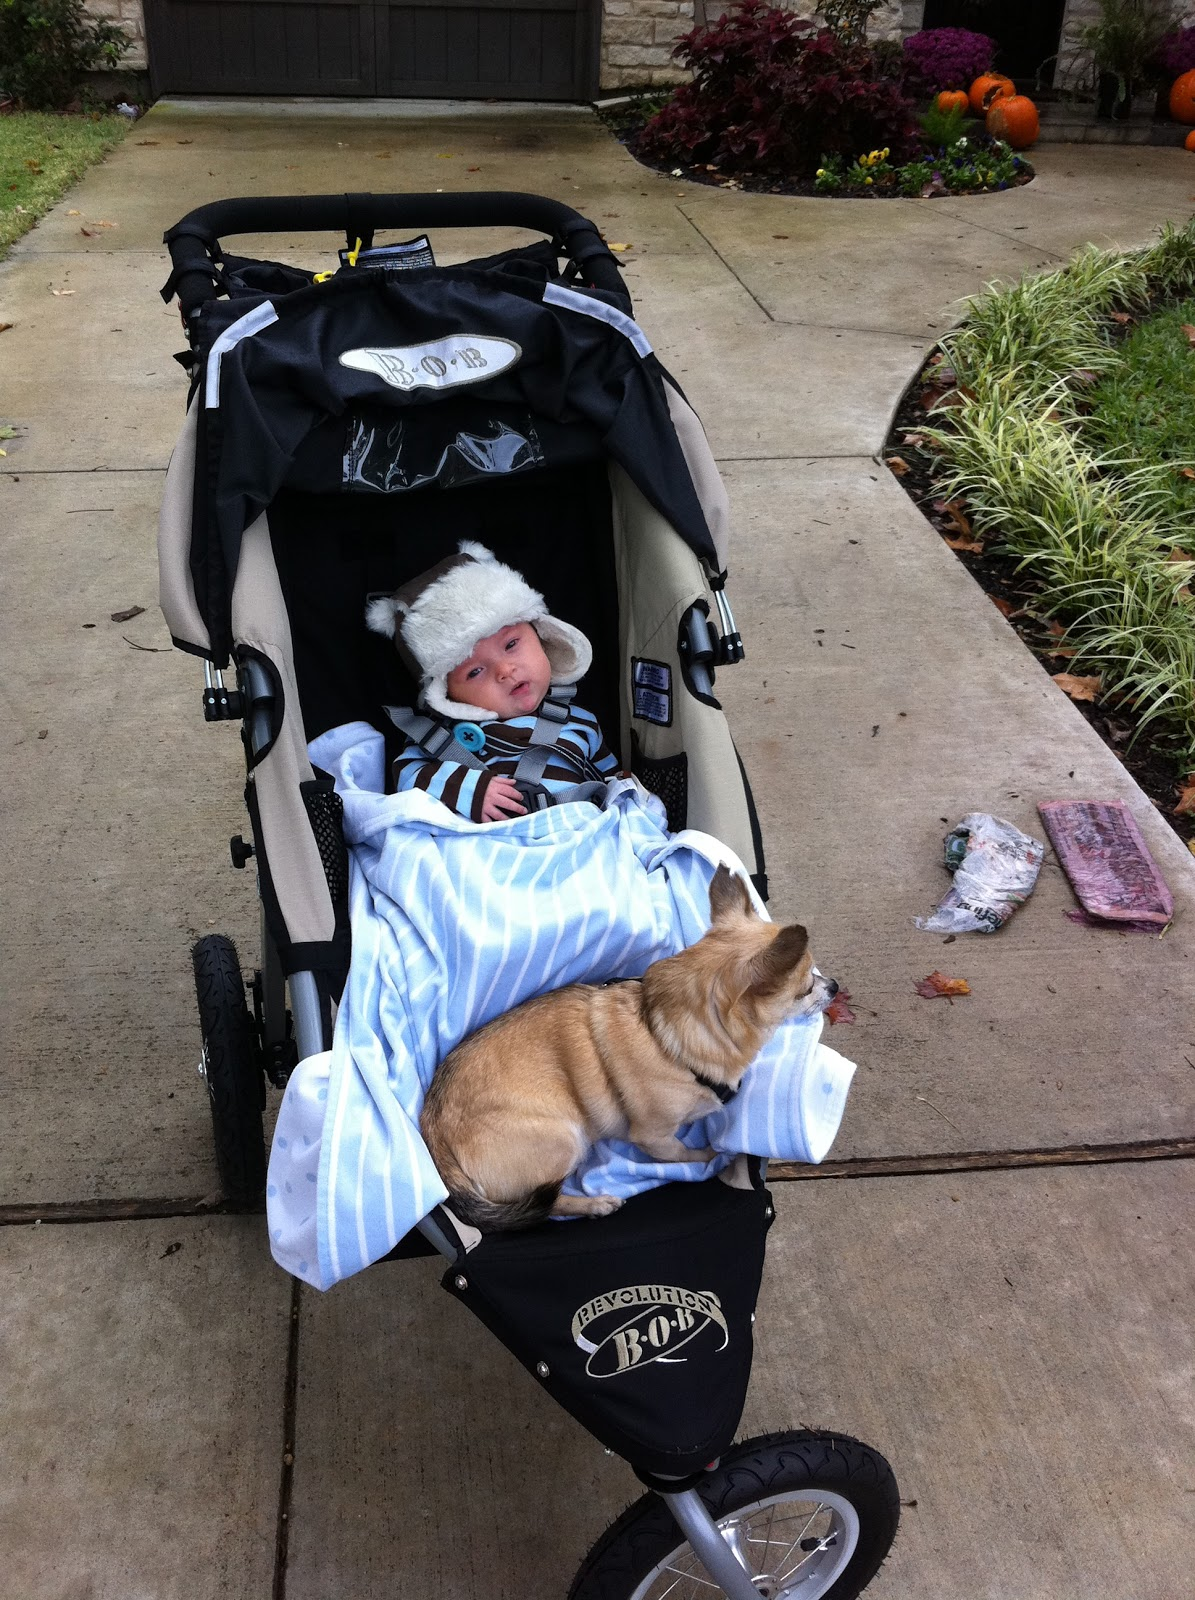 Daily Dimples: The Double Stroller